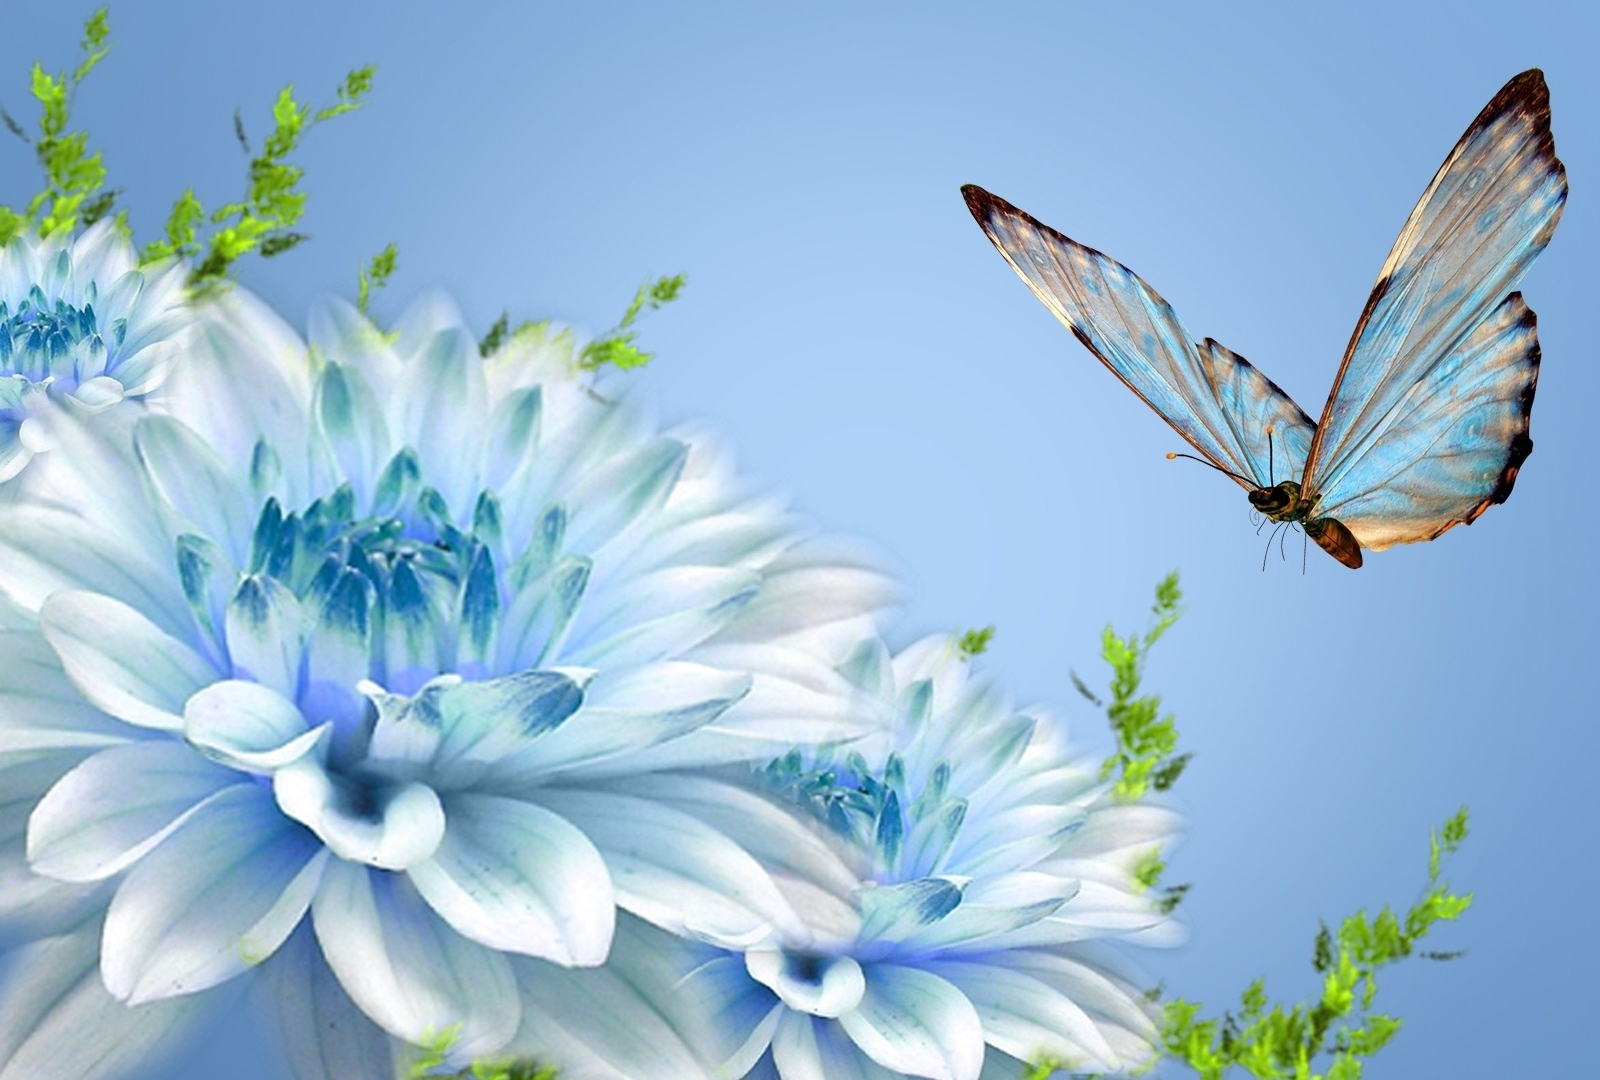 Beautiful Nature Wallpaper Wallpapers For Free Download About 1600x1080